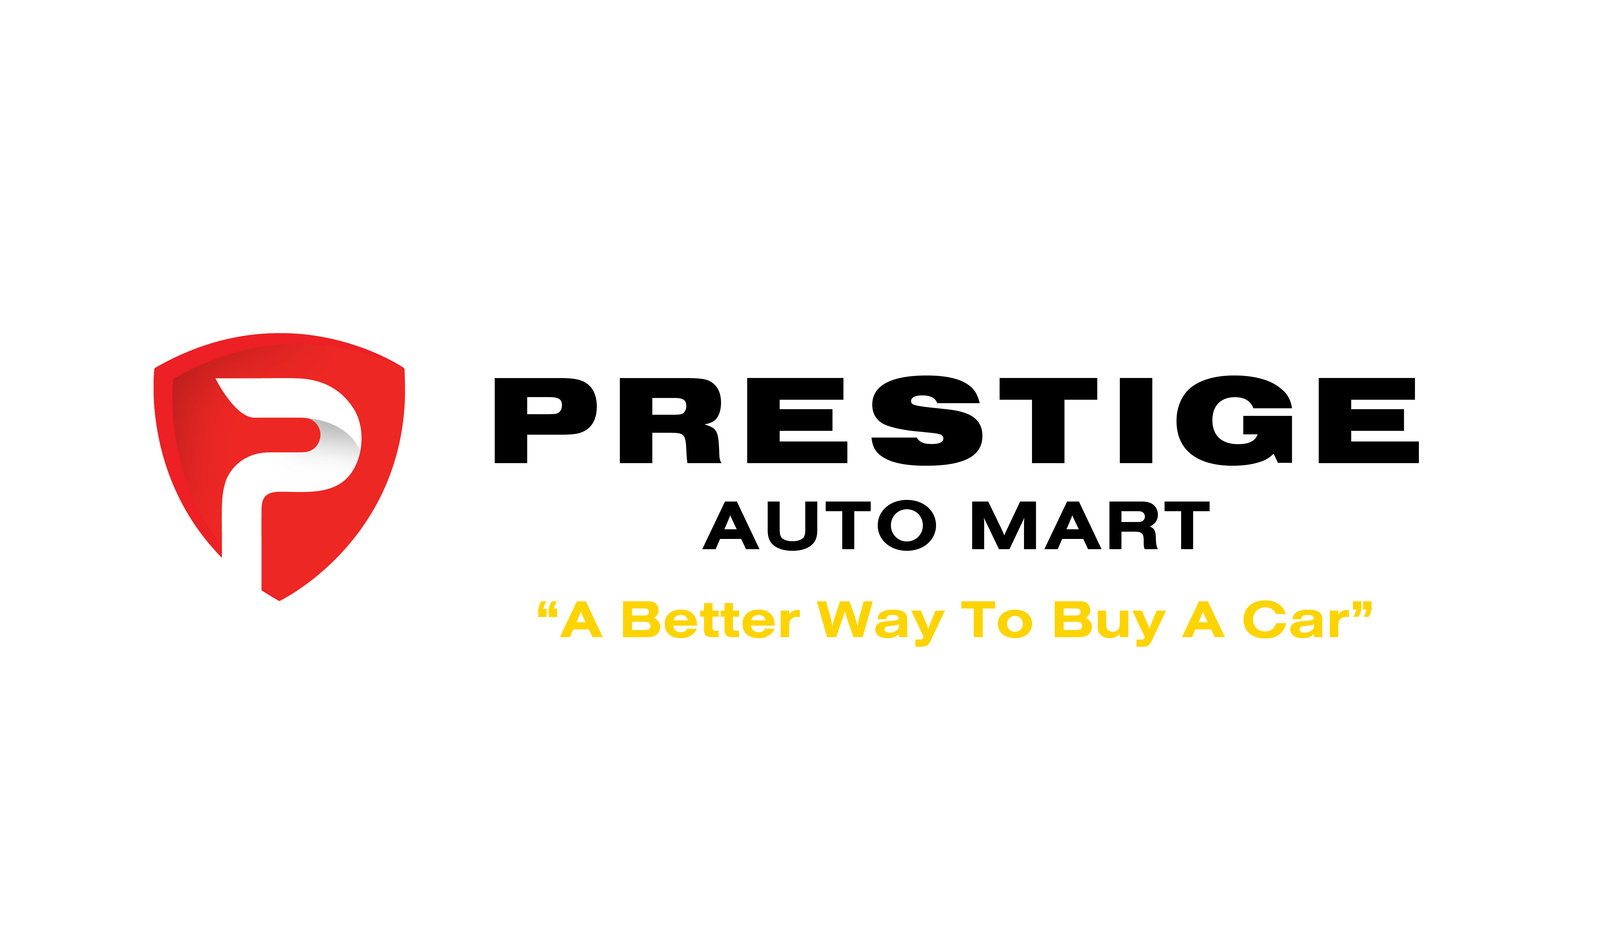 Prestige Auto Mart 1, Inc. - Westport, MA: Read Consumer reviews, Browse Used and New Cars for Sale